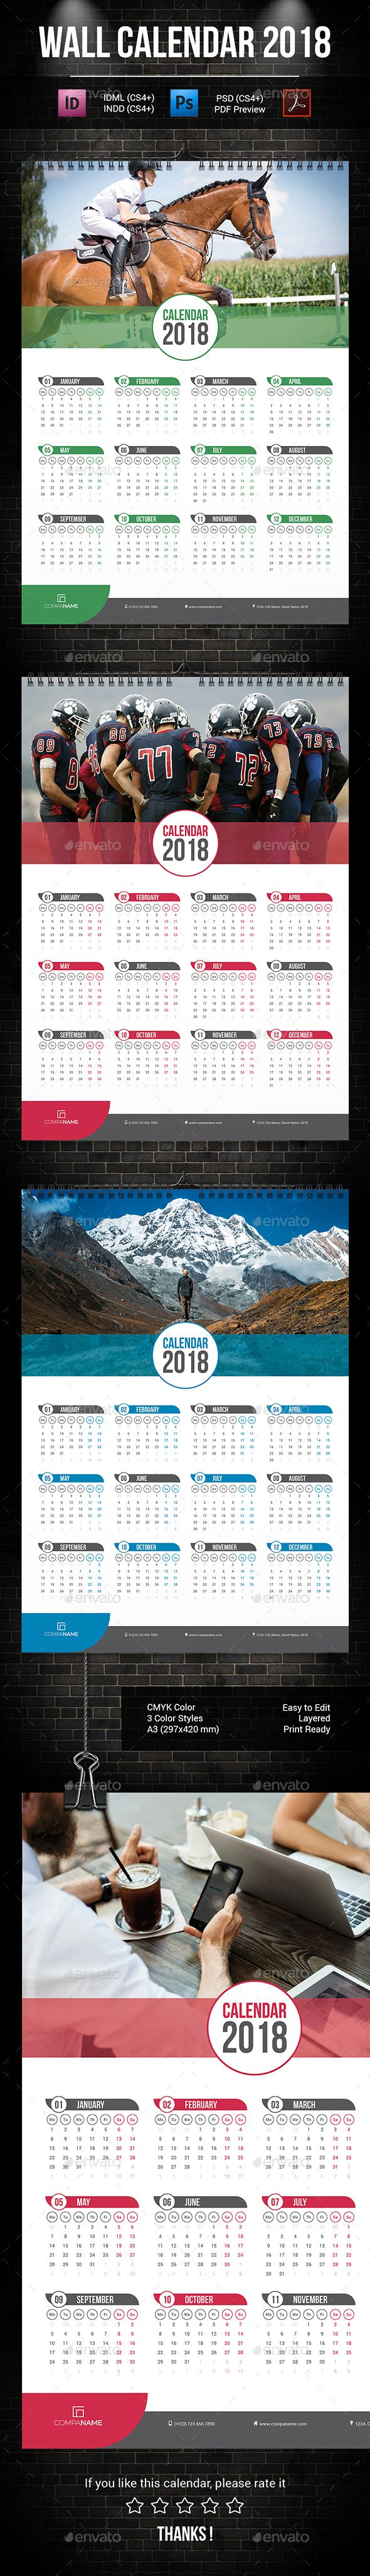 Wall Calendar 2018 Template PSD, InDesign INDD